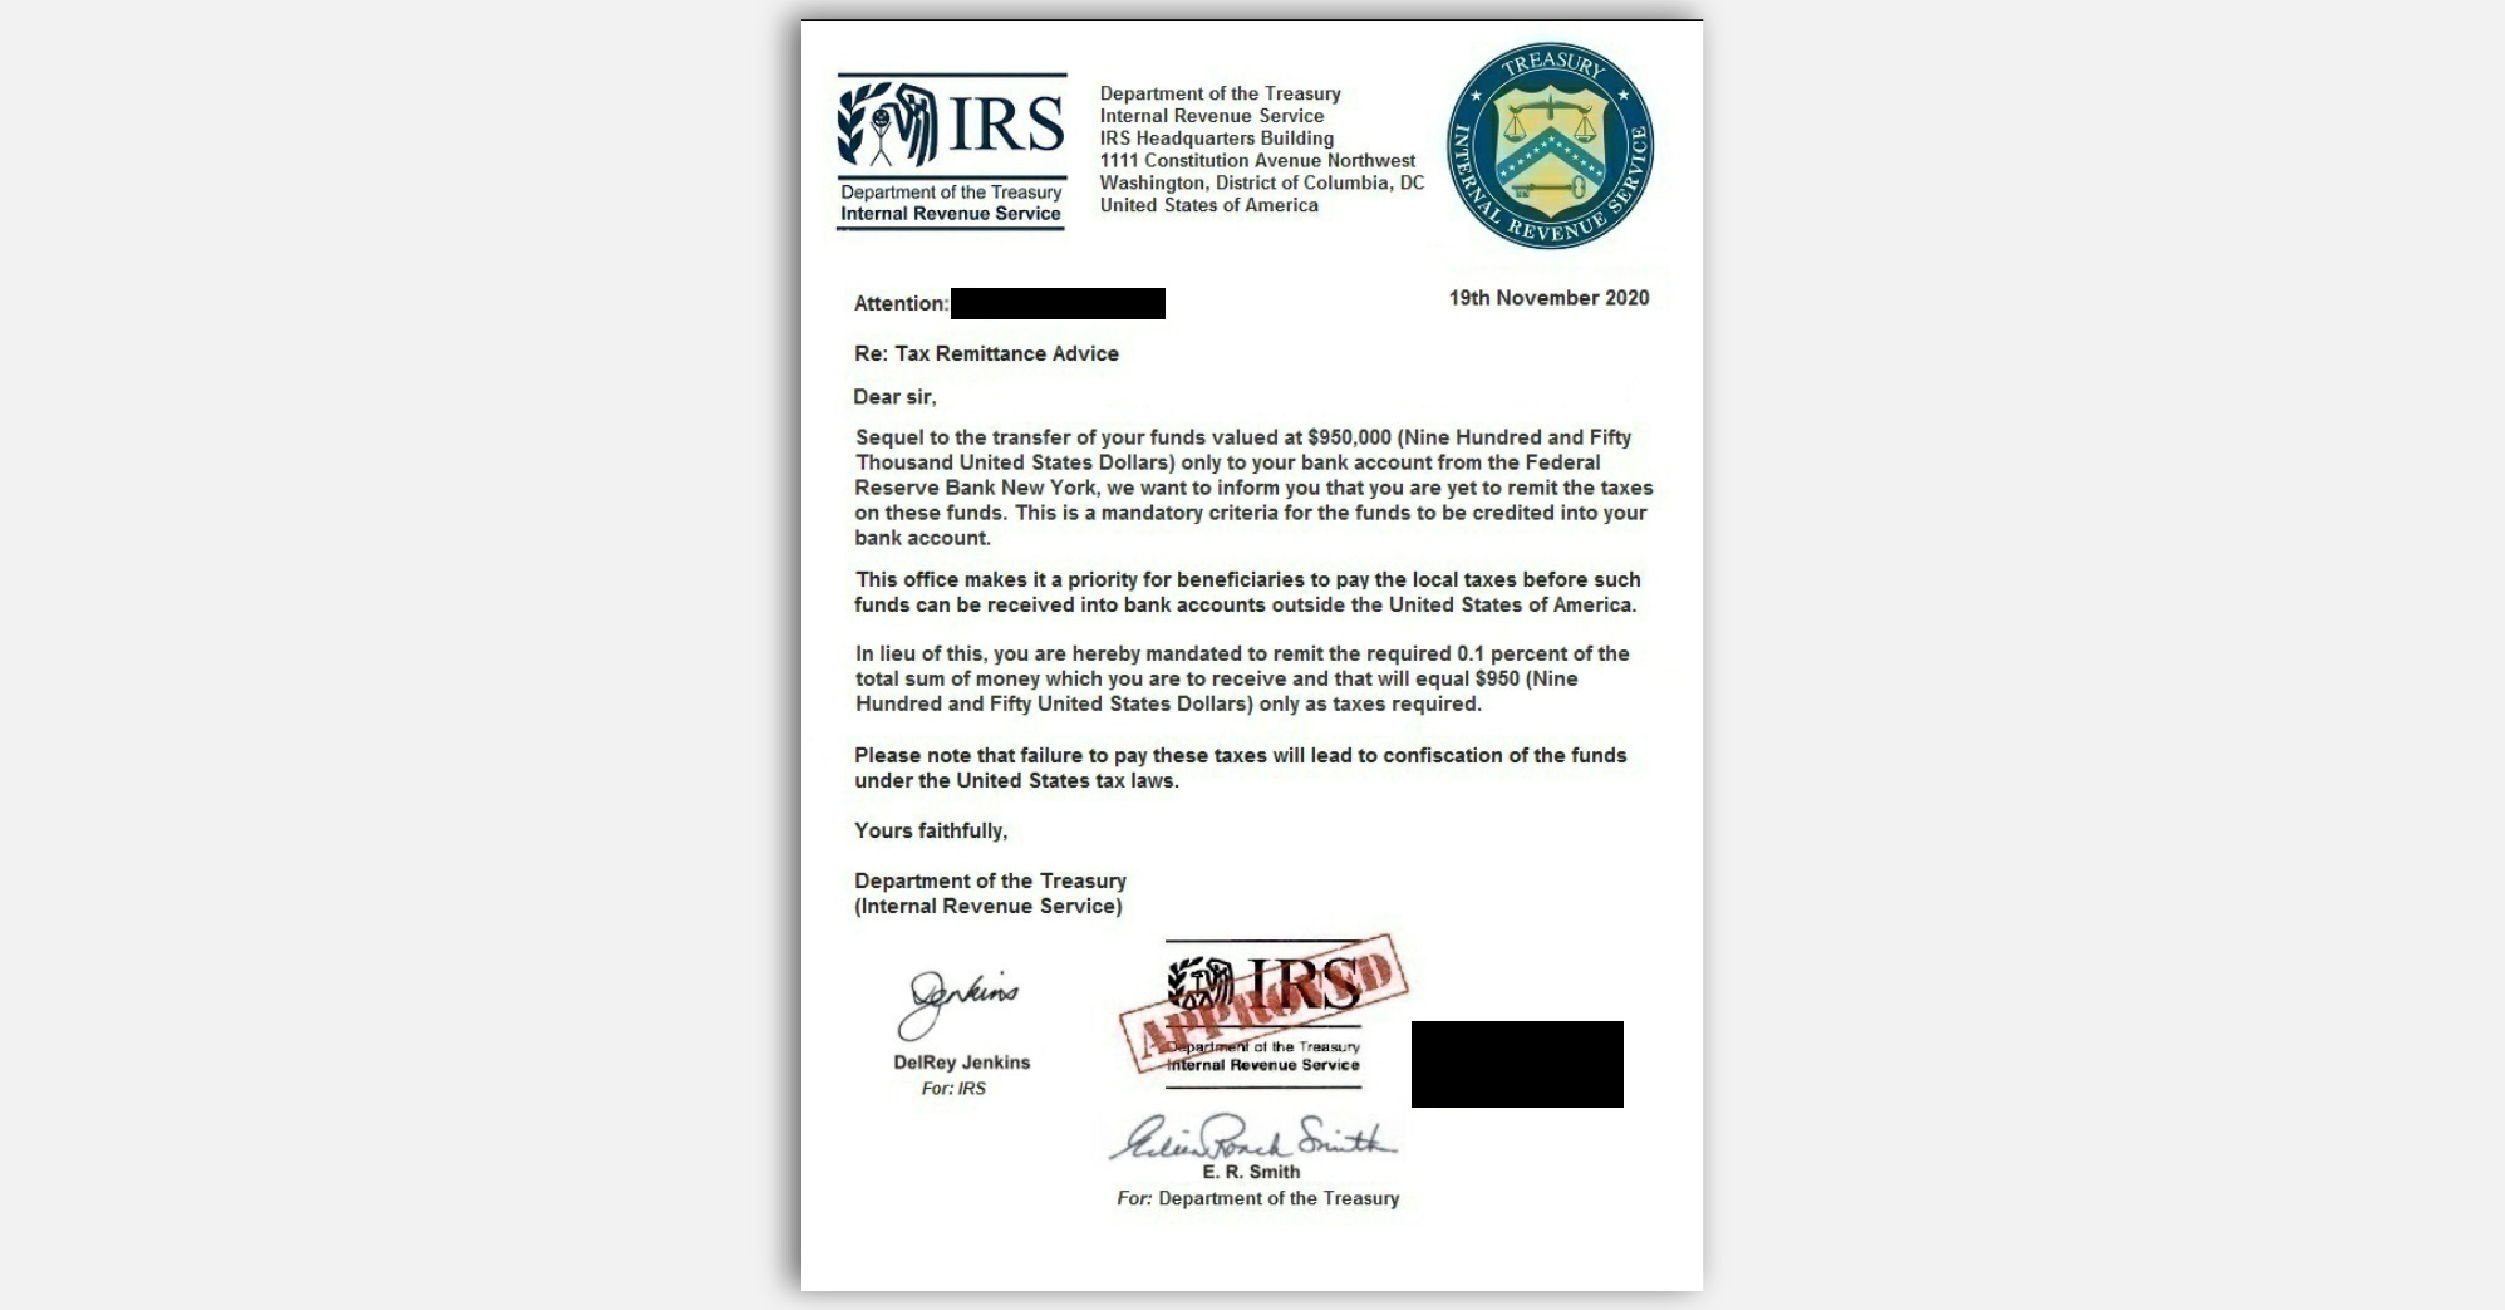 FTC impersonator scam fake IRS letter